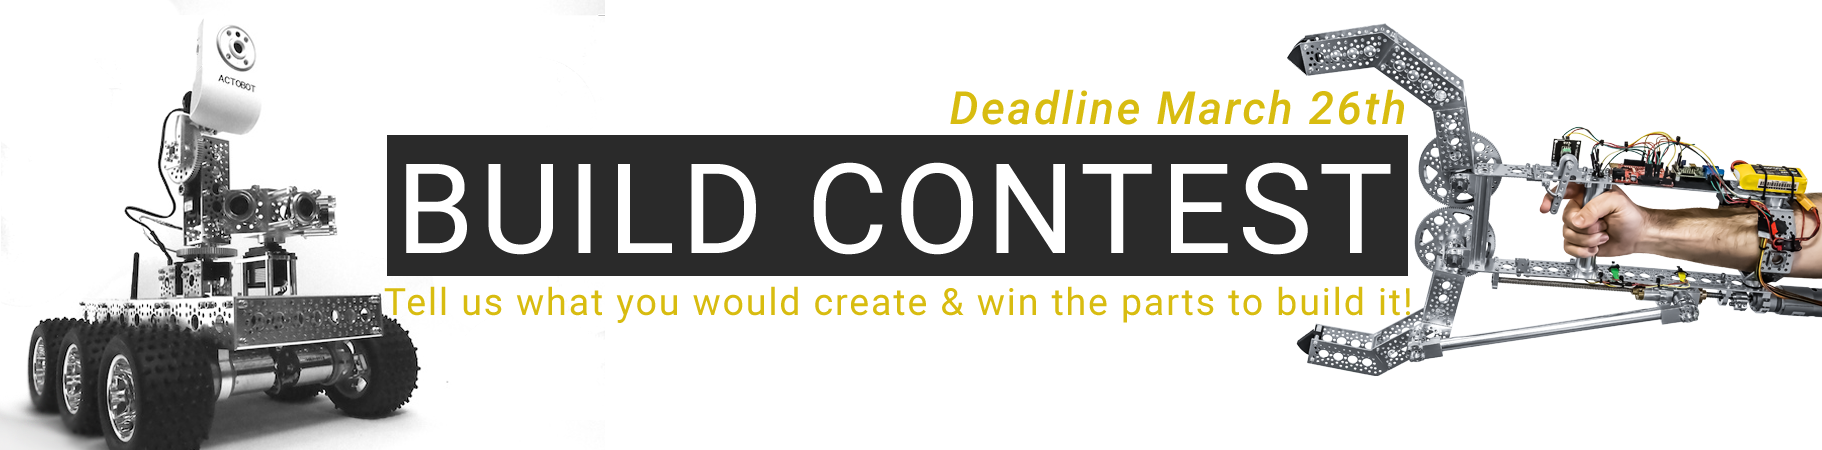 Click image for larger version  Name:Build-Contest_2.png Views:22 Size:326.8 KB ID:2257791